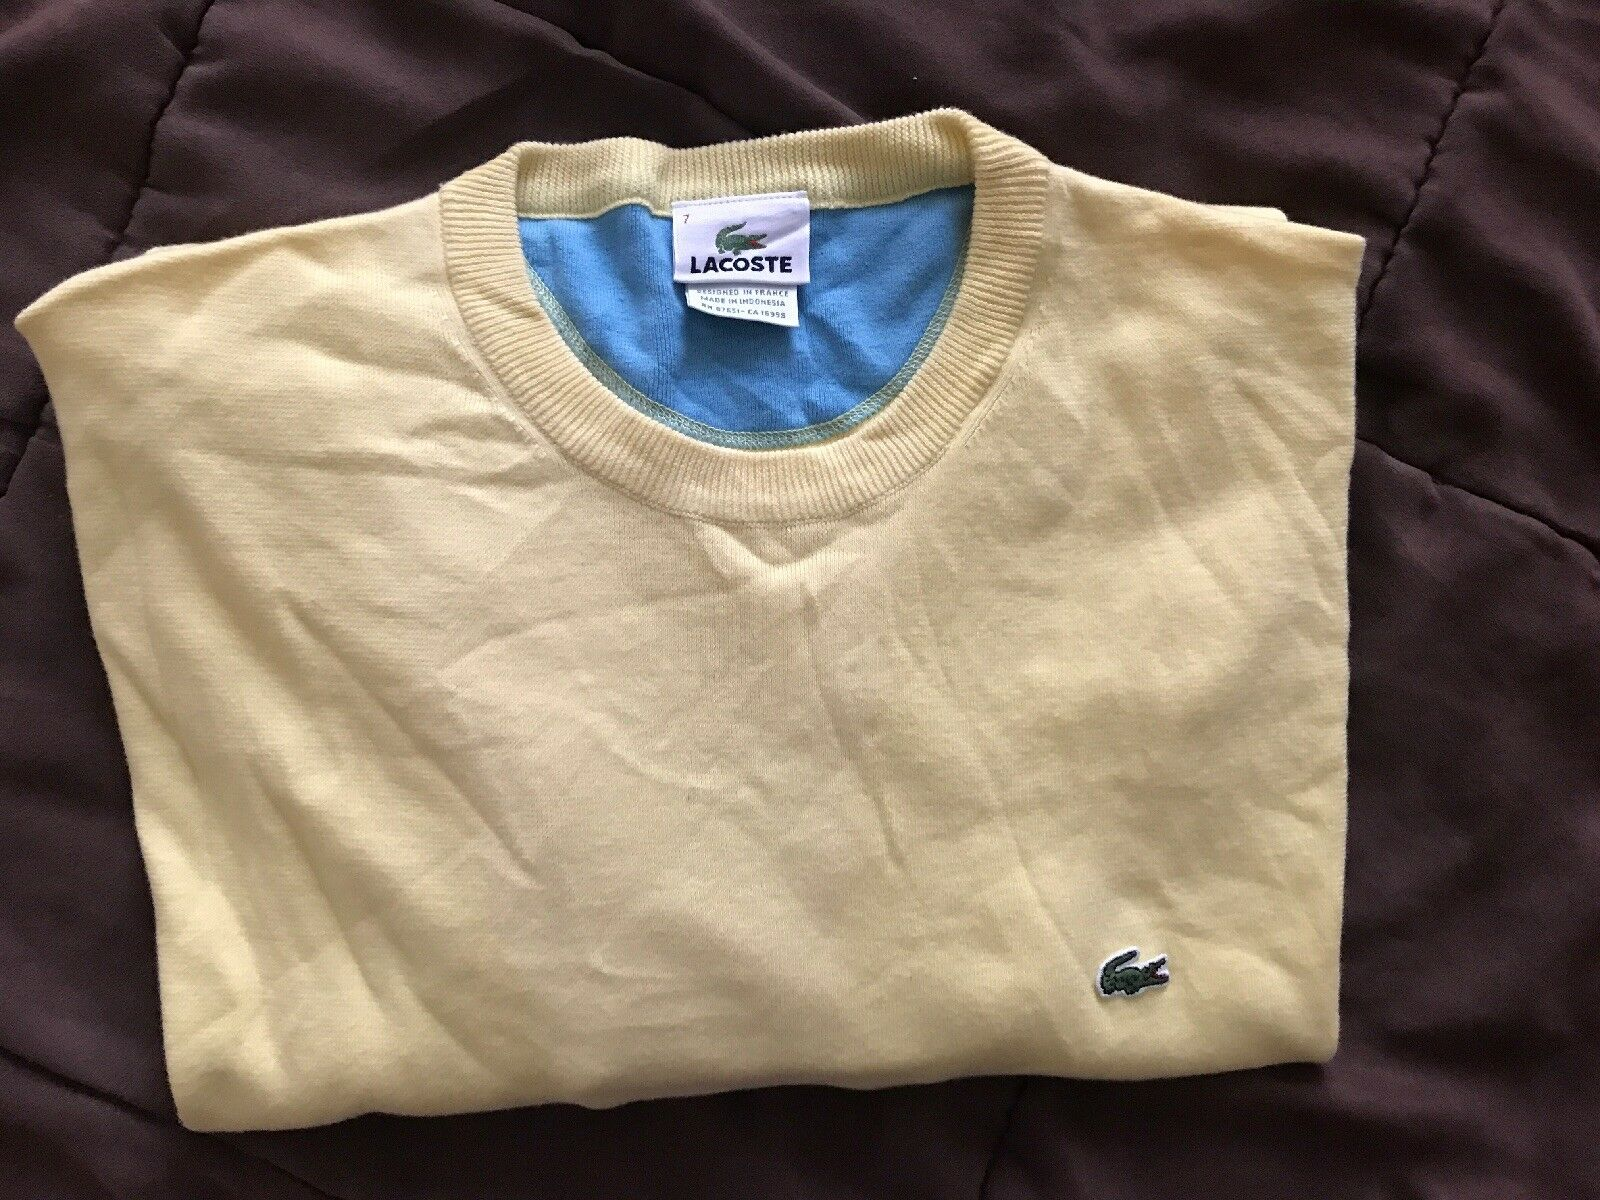 Lacoste Sweater Shirt Men Größe 7 Brand New Without Tags Excellent Condition